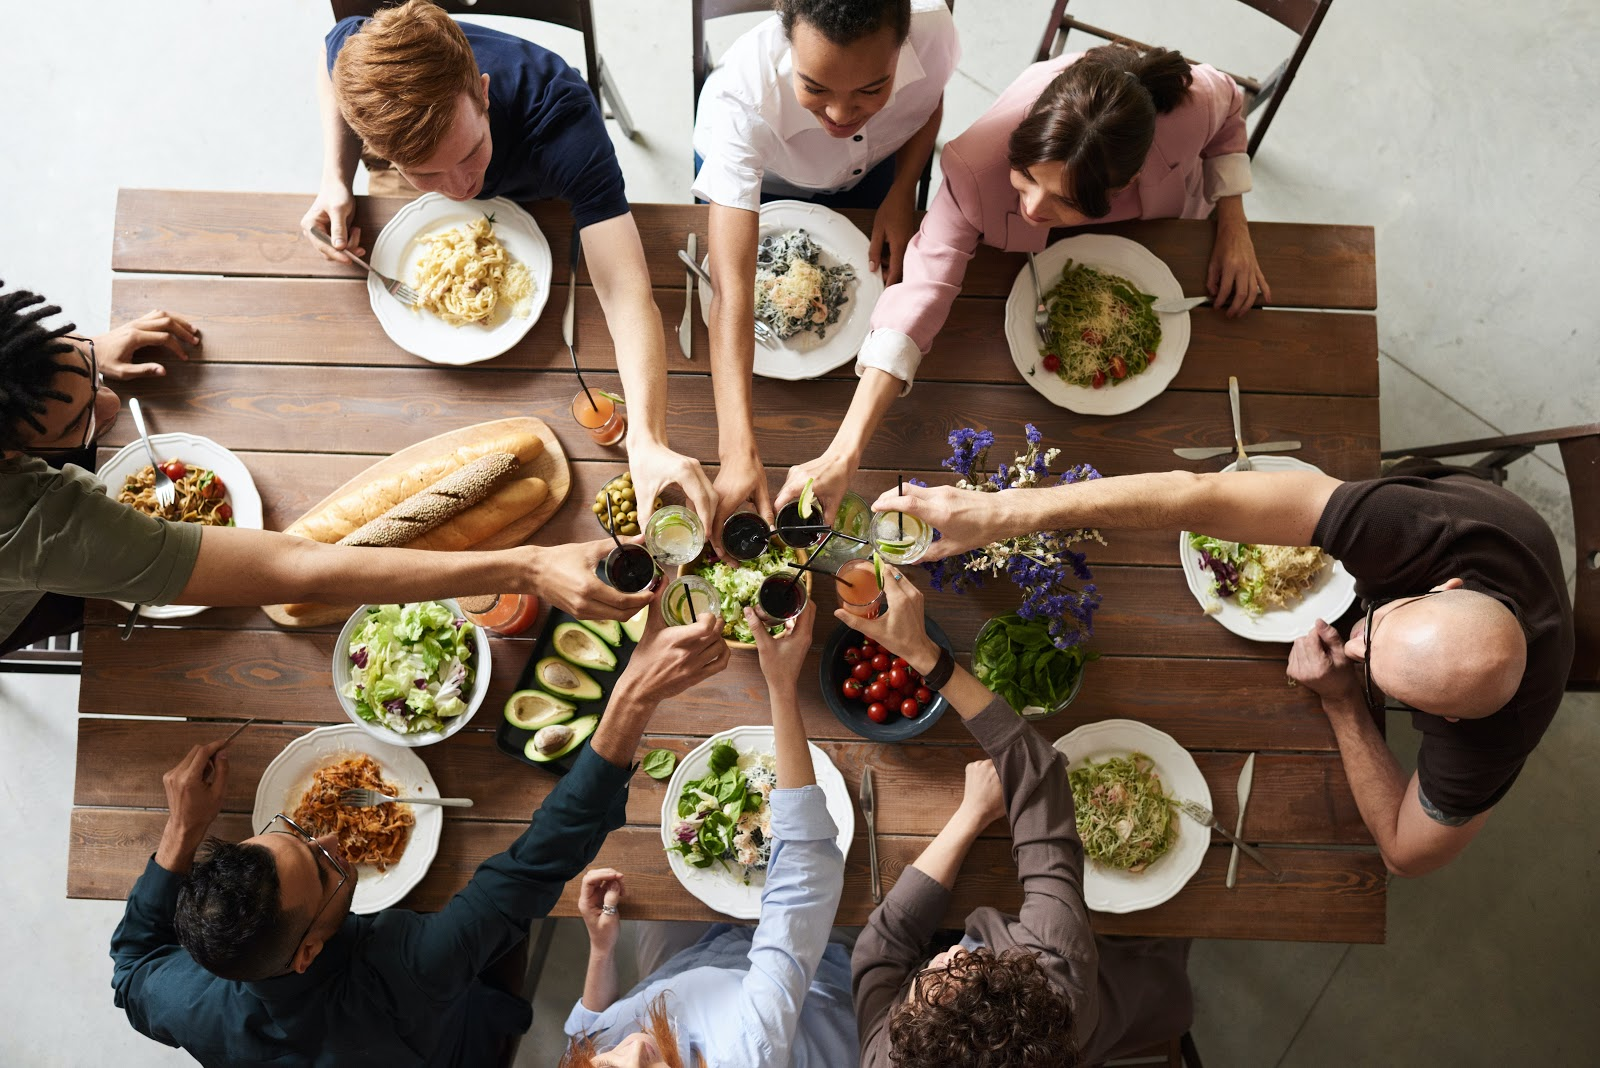 A group of friends in their 40s share a meal together.